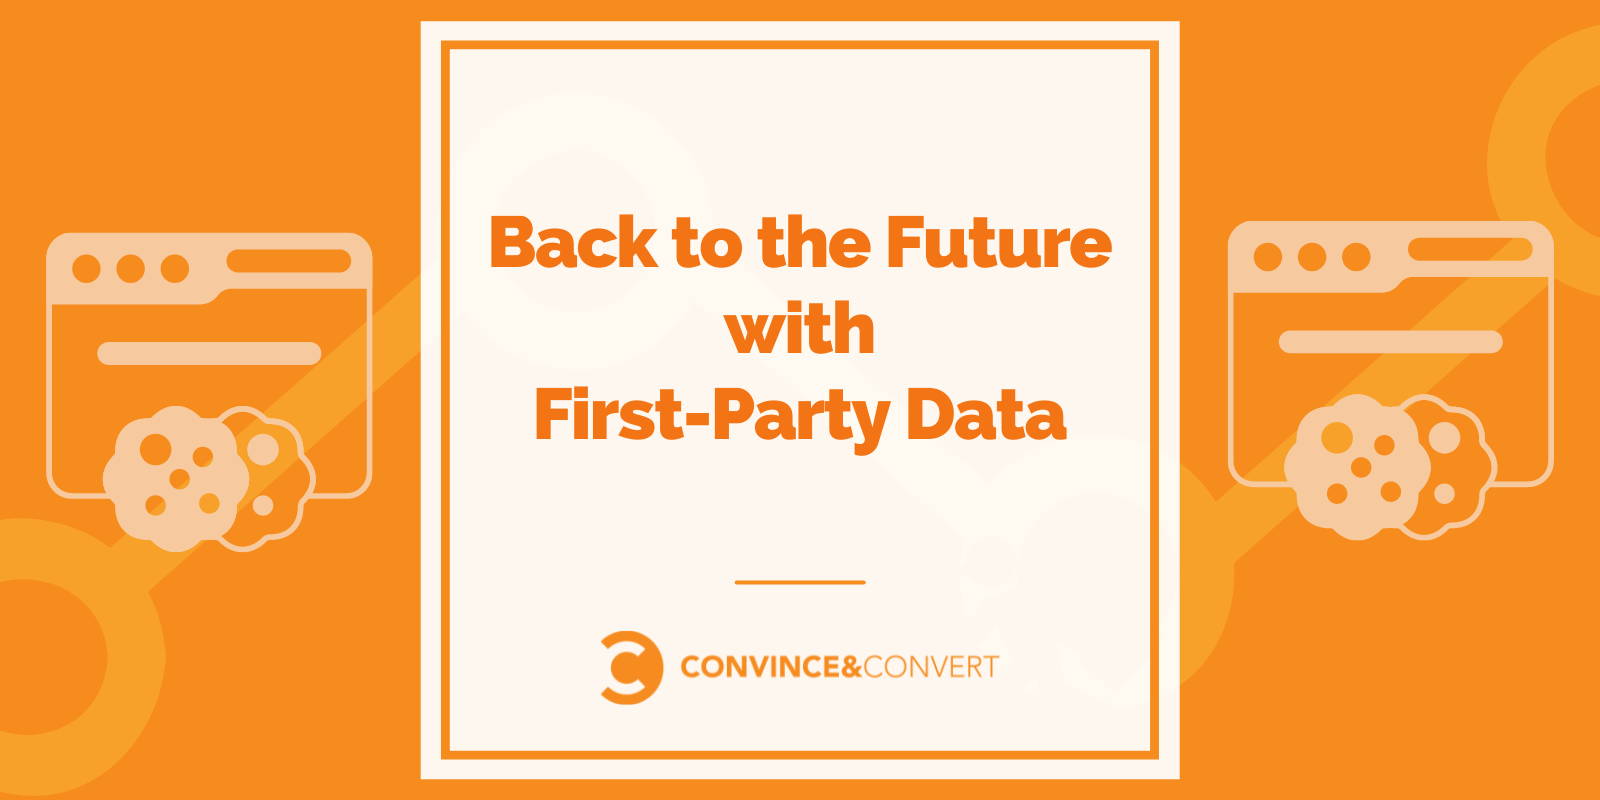 Back to the Future with First-Party Data